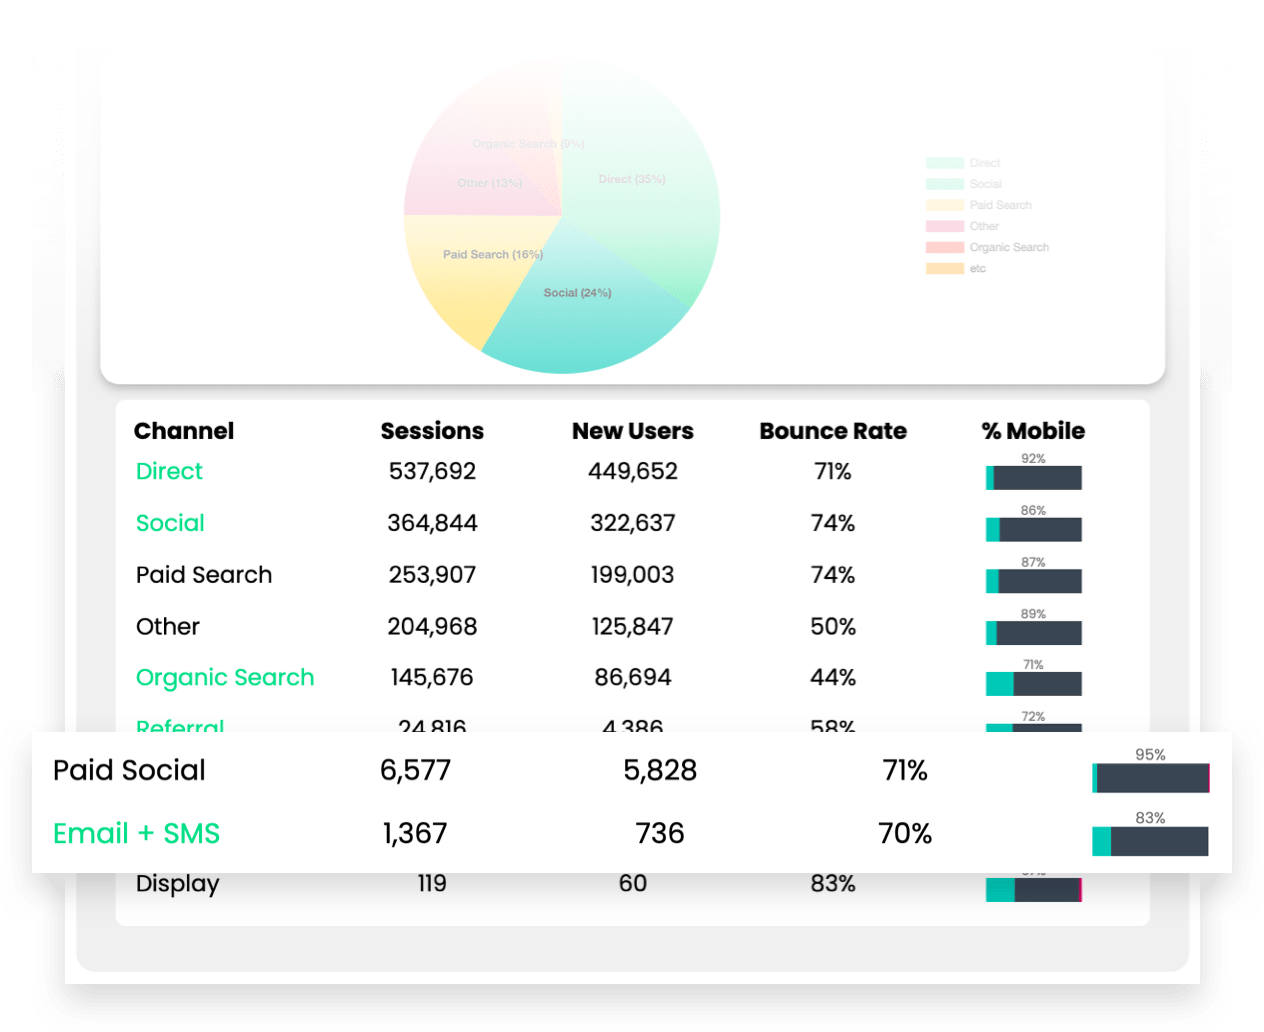 Underleveraged traffic sources revealed in Statlas analytics dashboard: Paid Social, Email, and SMS traffic are the least utilized channels